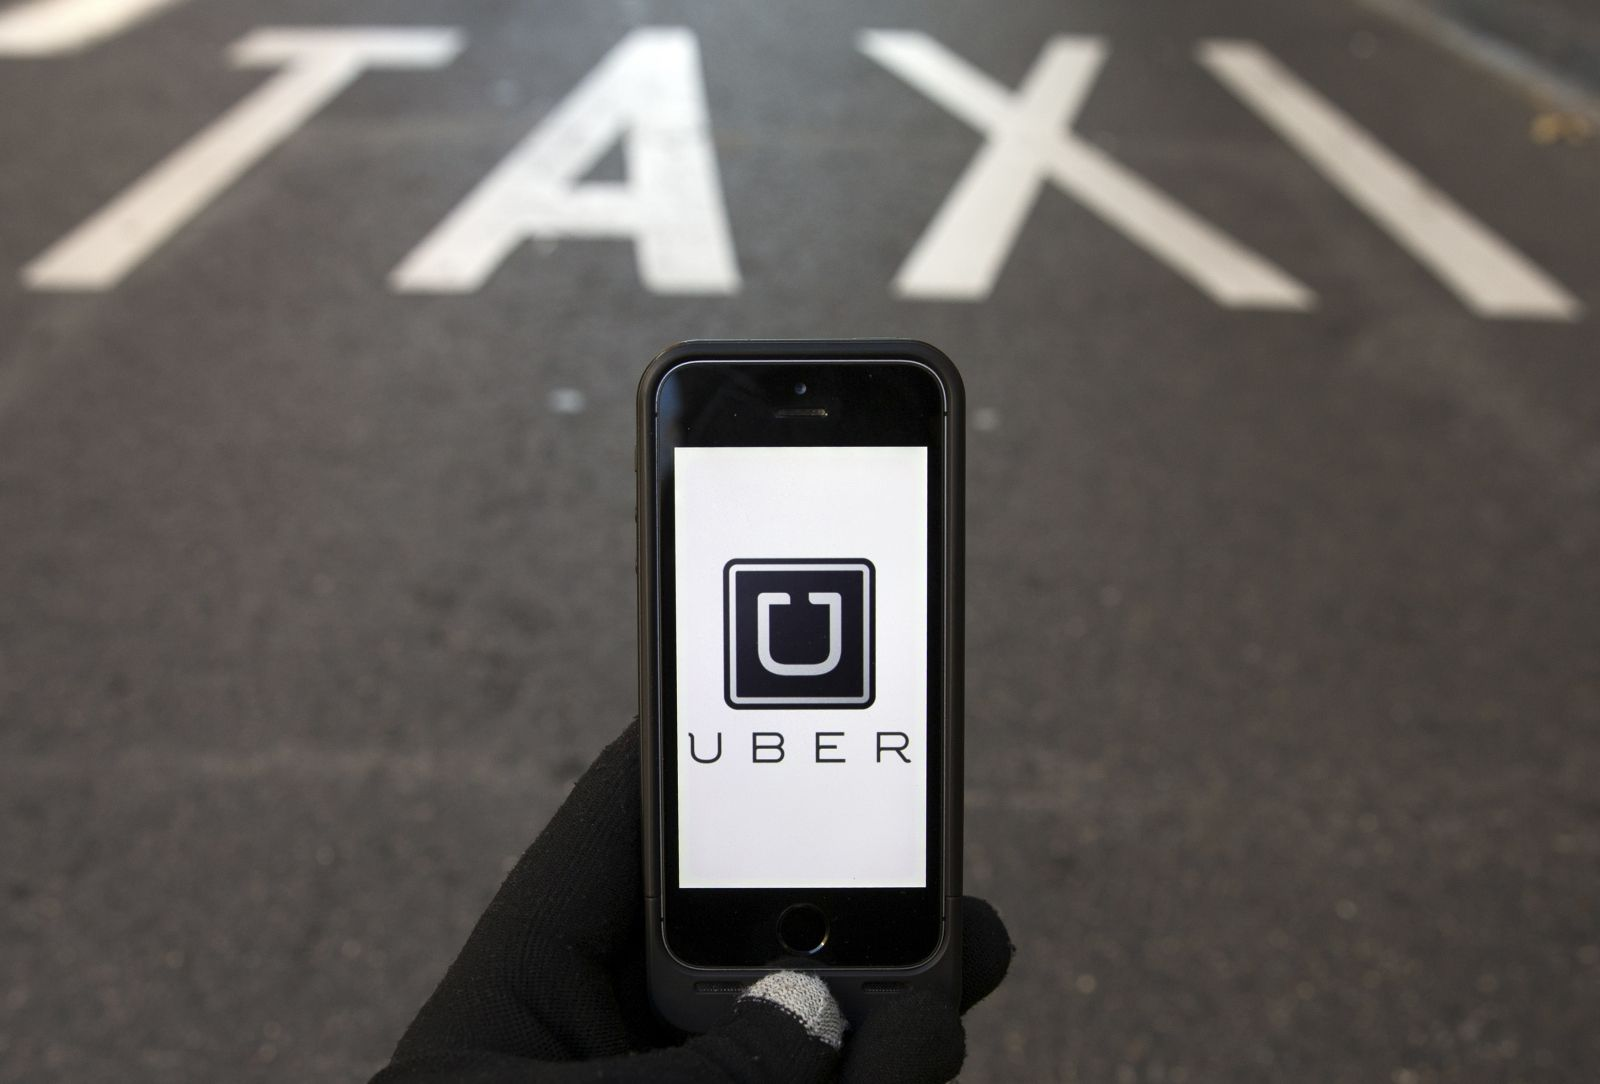 Uber Drivers Licences Insurance Documents And Social Security